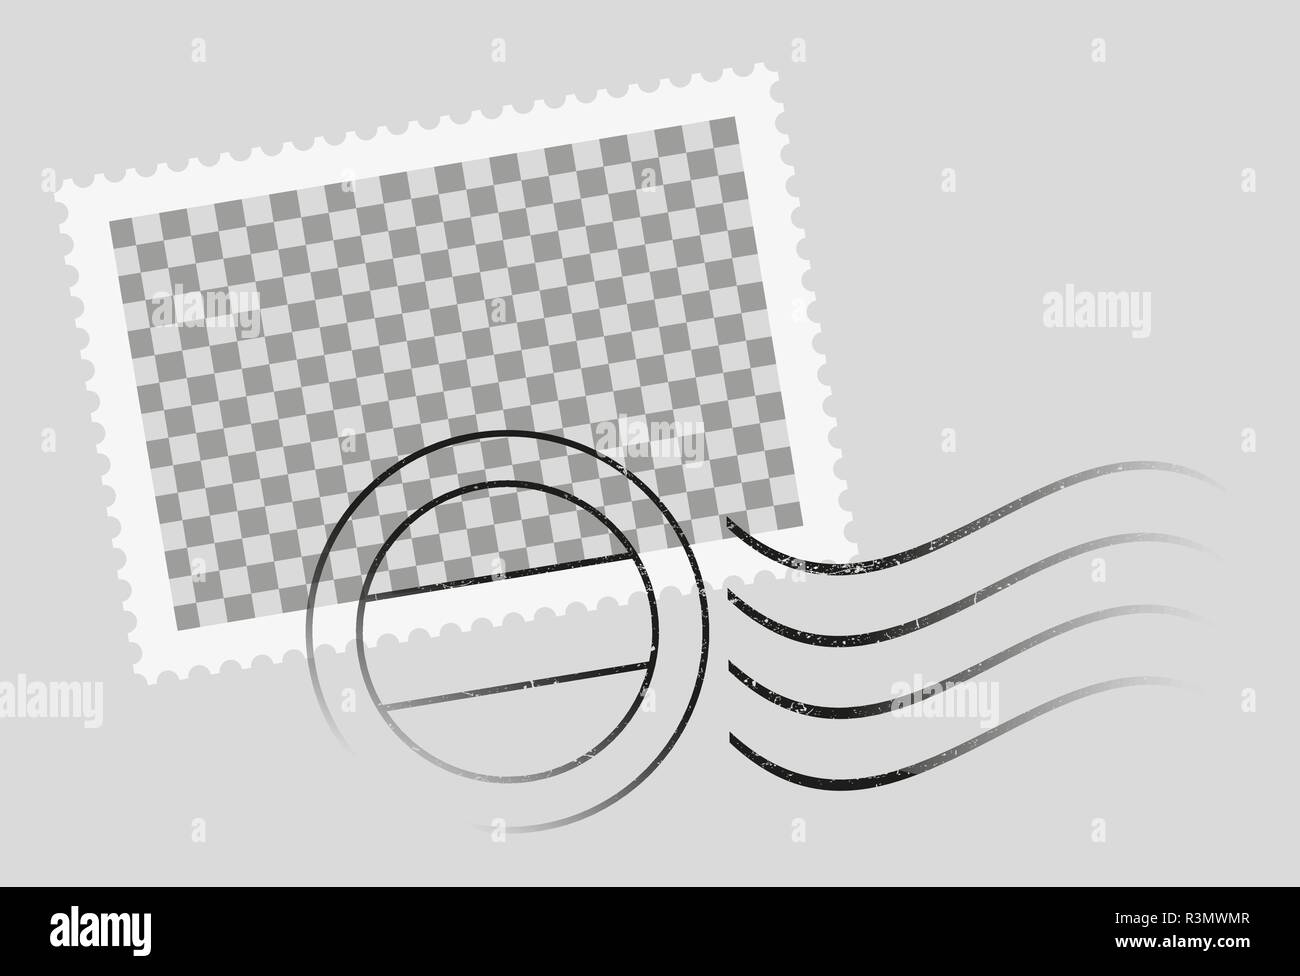 postmarked postage stamp template with date stamp - Stock Image